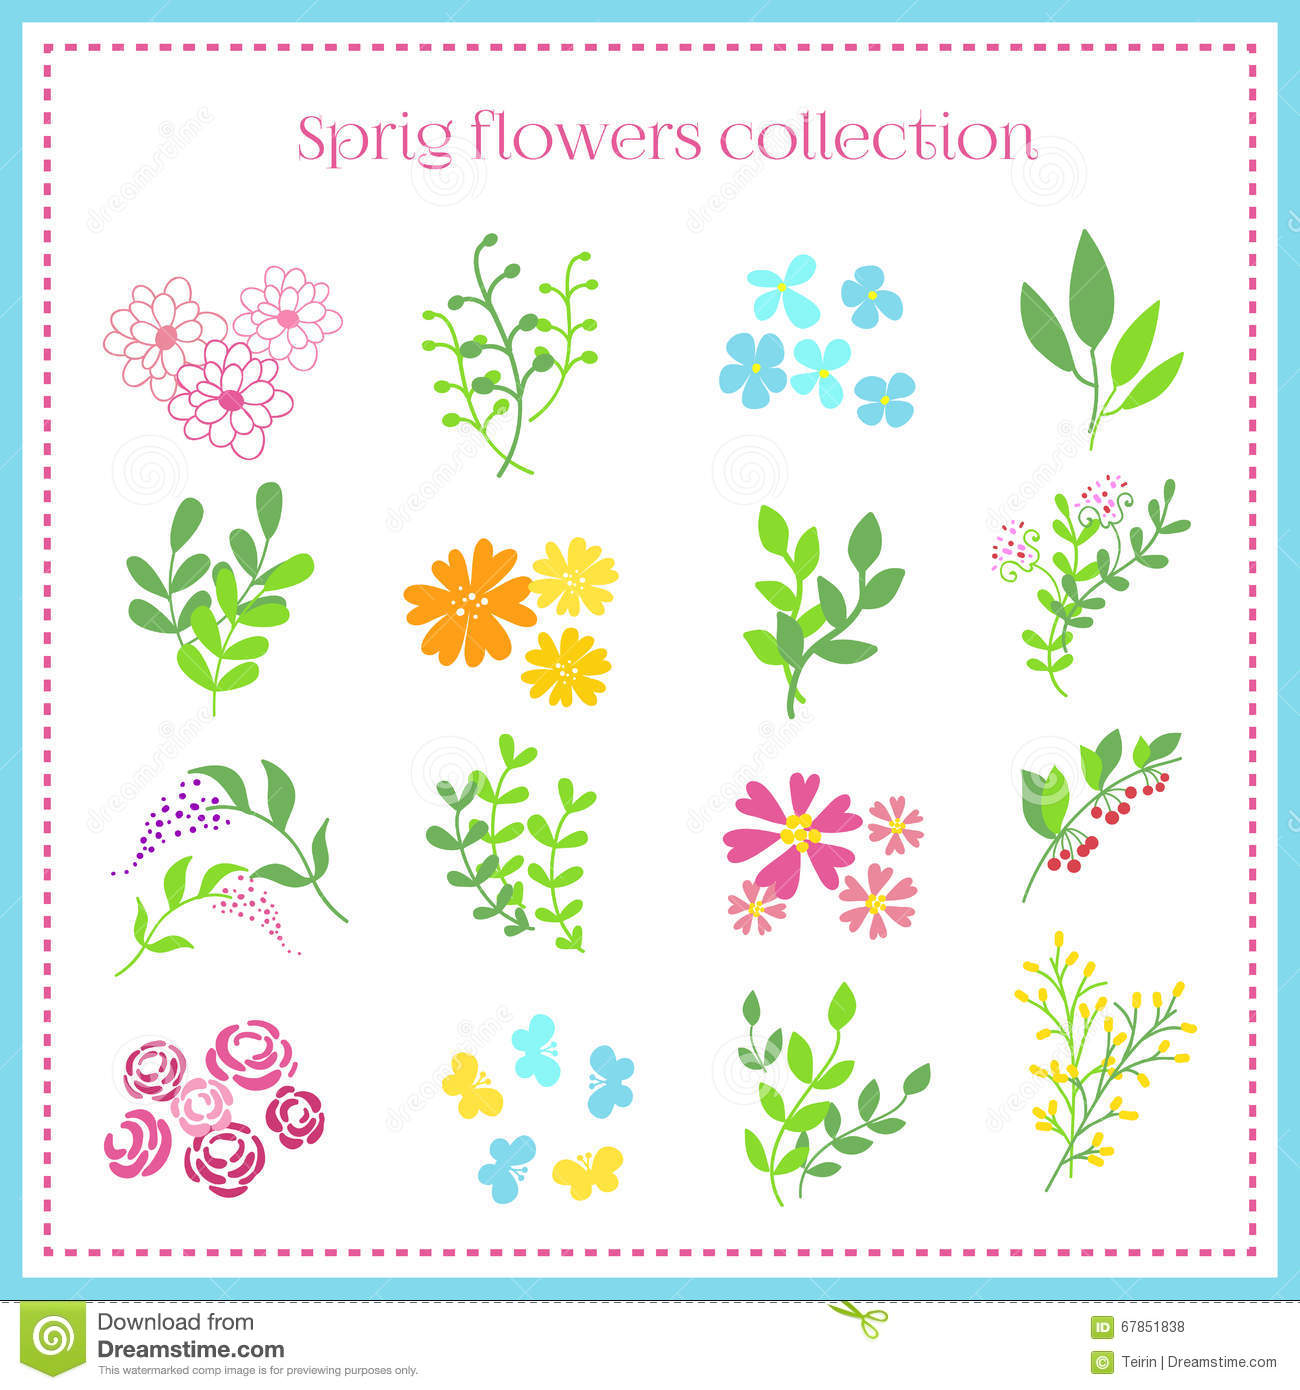 Spring flowers setctor illustration stock vector illustration download spring flowers setctor illustration stock vector illustration of foliage blue mightylinksfo